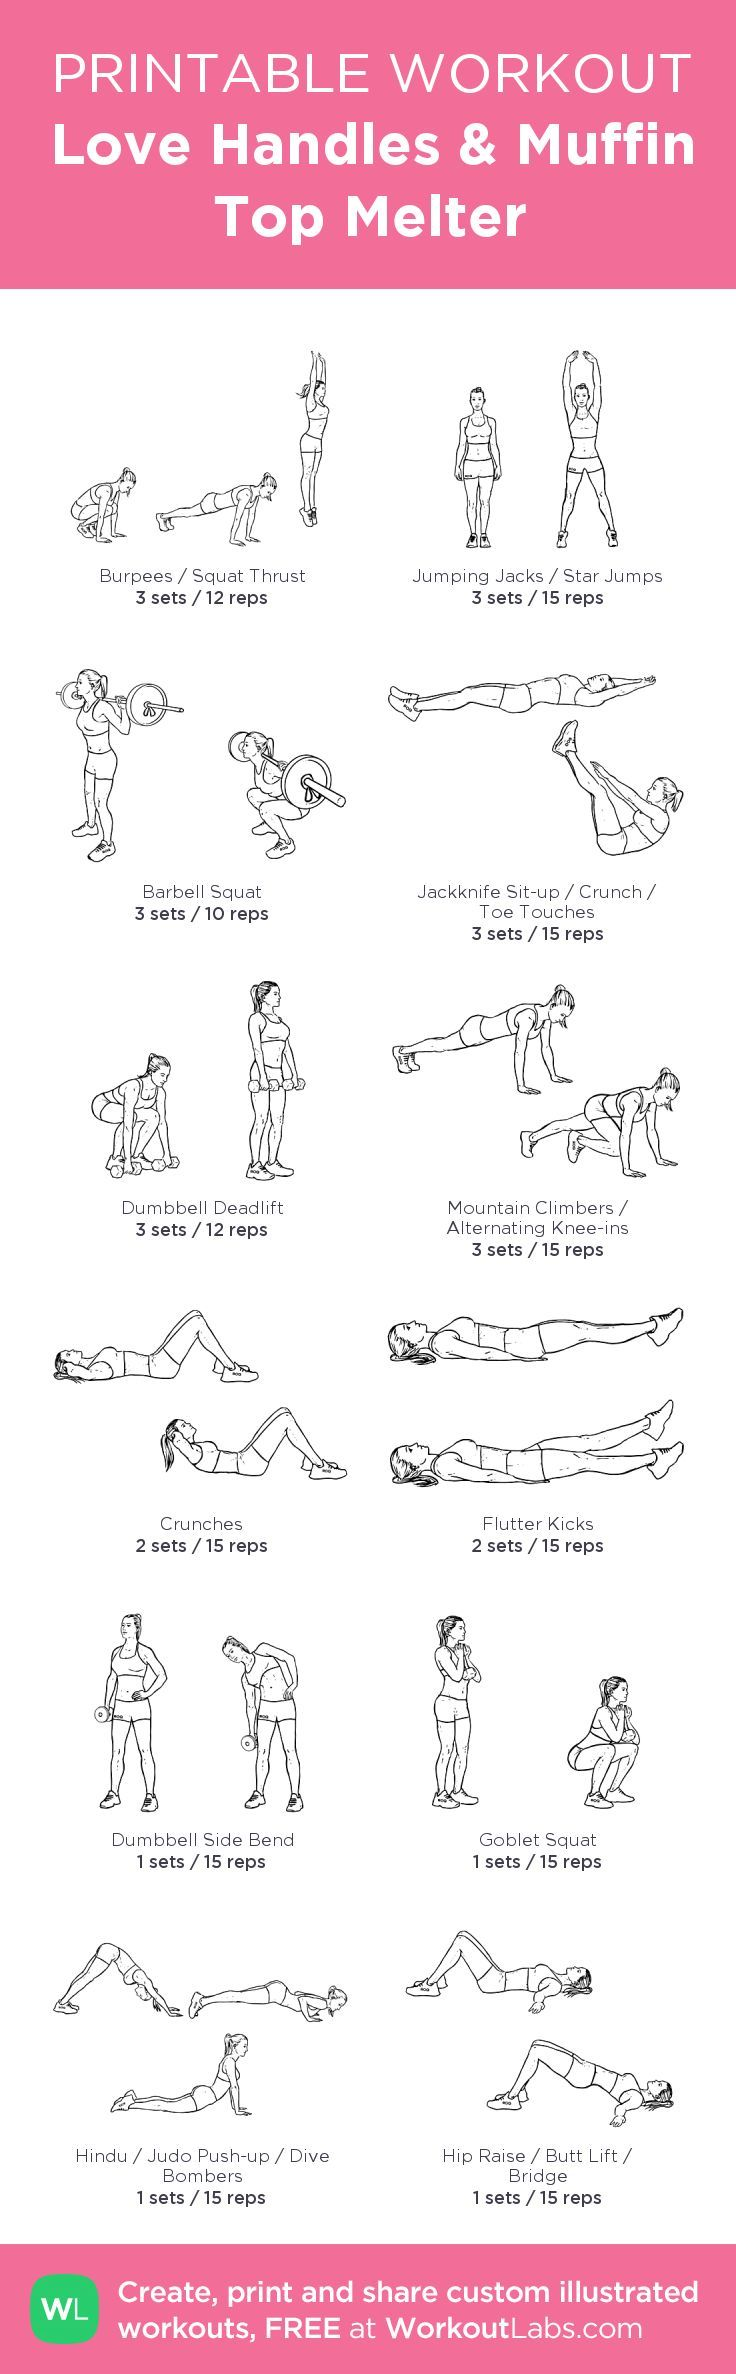 Love Handles & Muffin Top Melter –my custom workout created at WorkoutLabs.com • Click through to download as printable PDF! #customworkout